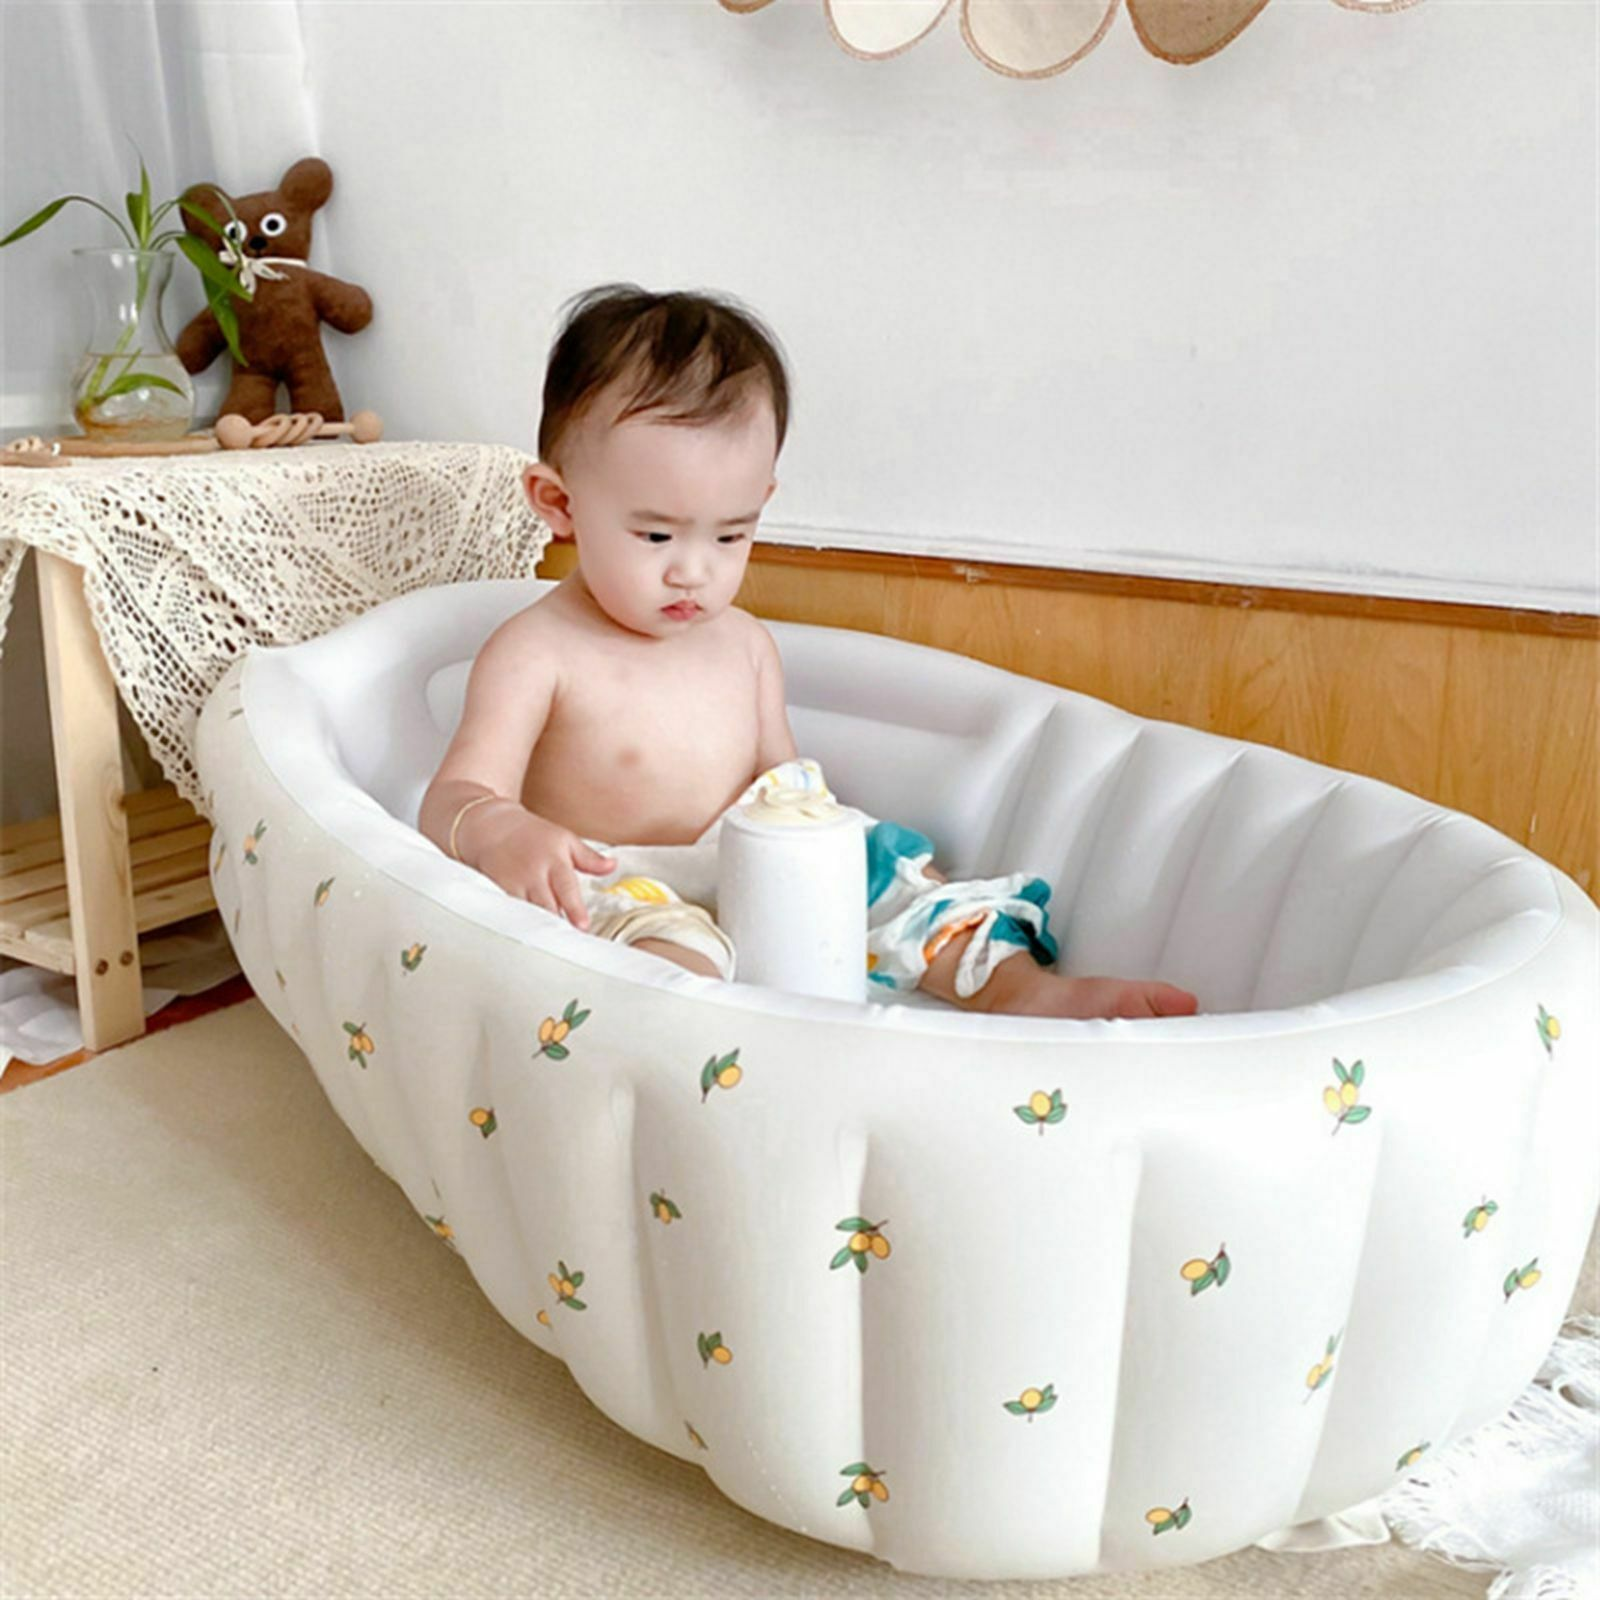 Inflatable Bathtub Anti-Slippery Support The Back Swimming Pool for Travel